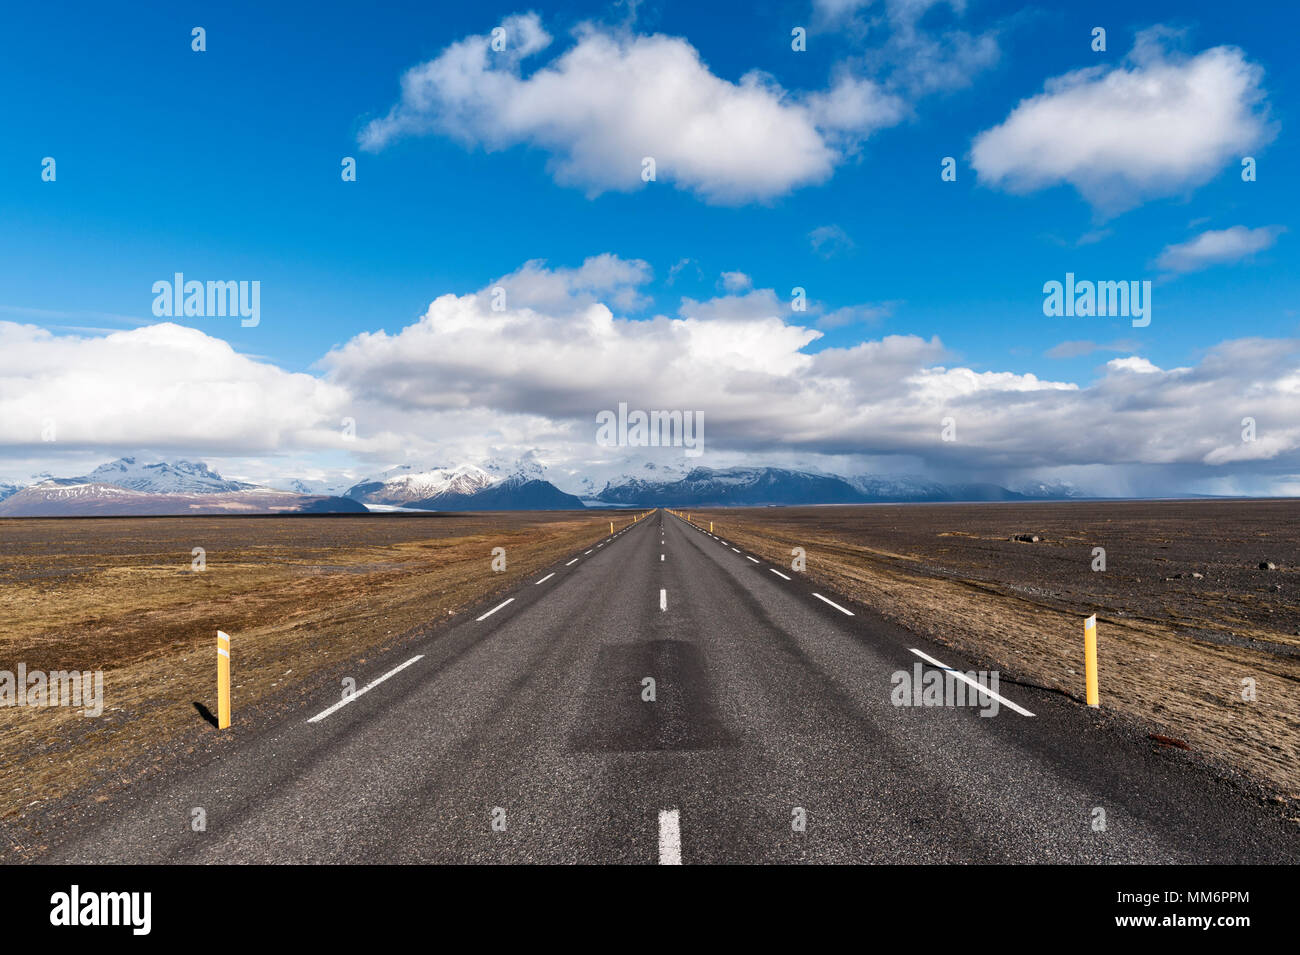 South Iceland. The empty Ring Road (Route 1 or Hringvegur) looking towards Skaftafell and the snow-capped mountains of the Vatnajökull National Park - Stock Image